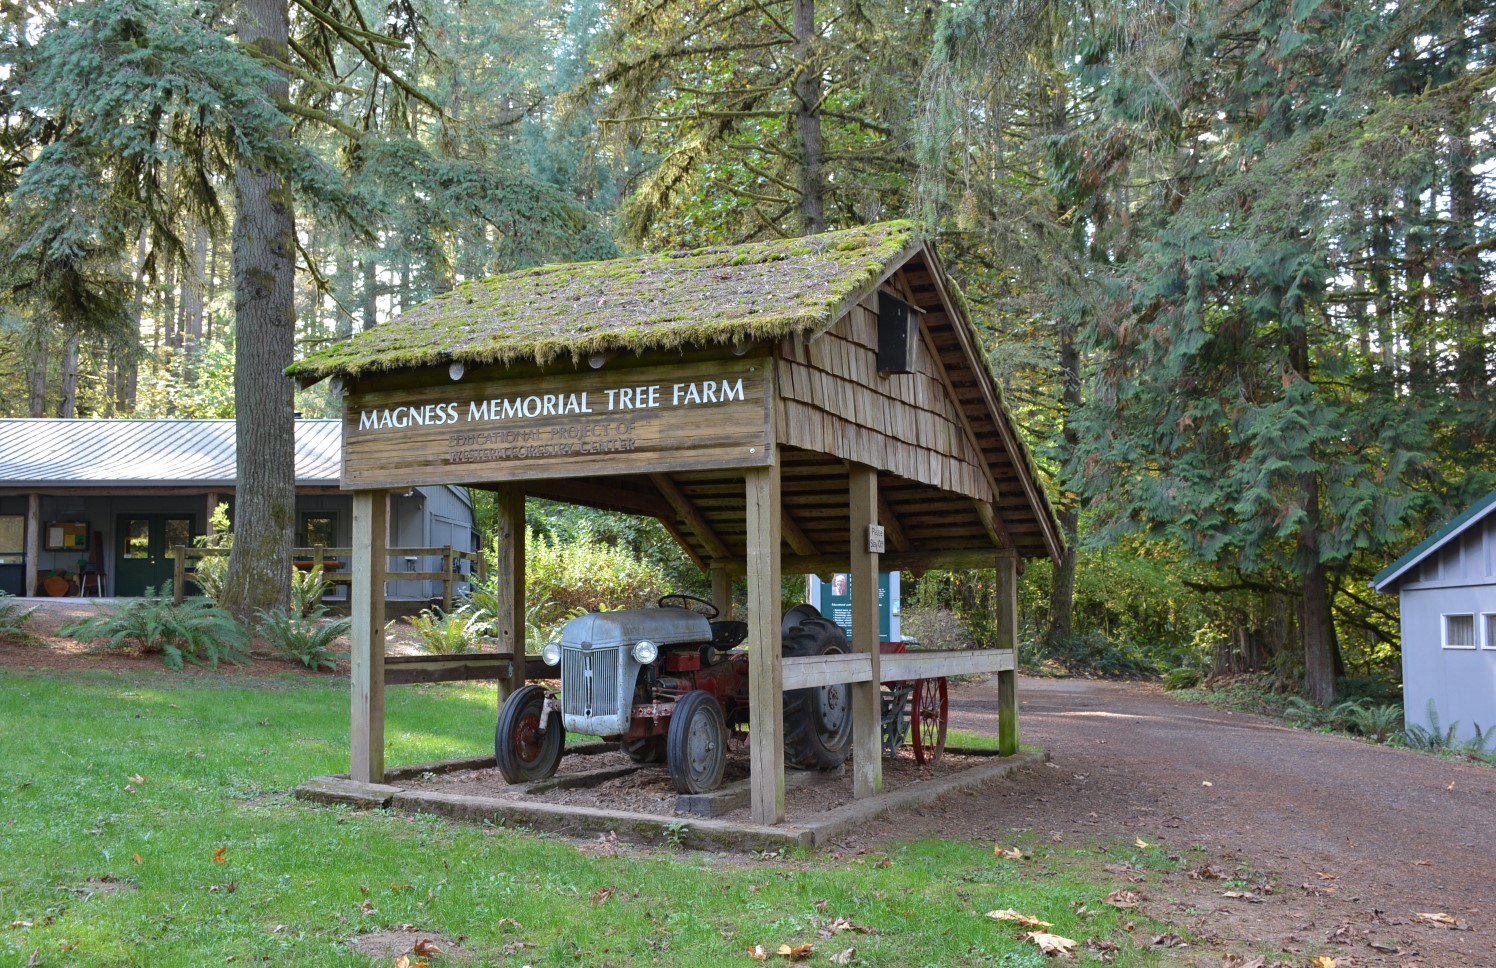 Vintage tractor under wooden shelter at Magness Memorial Tree Farm